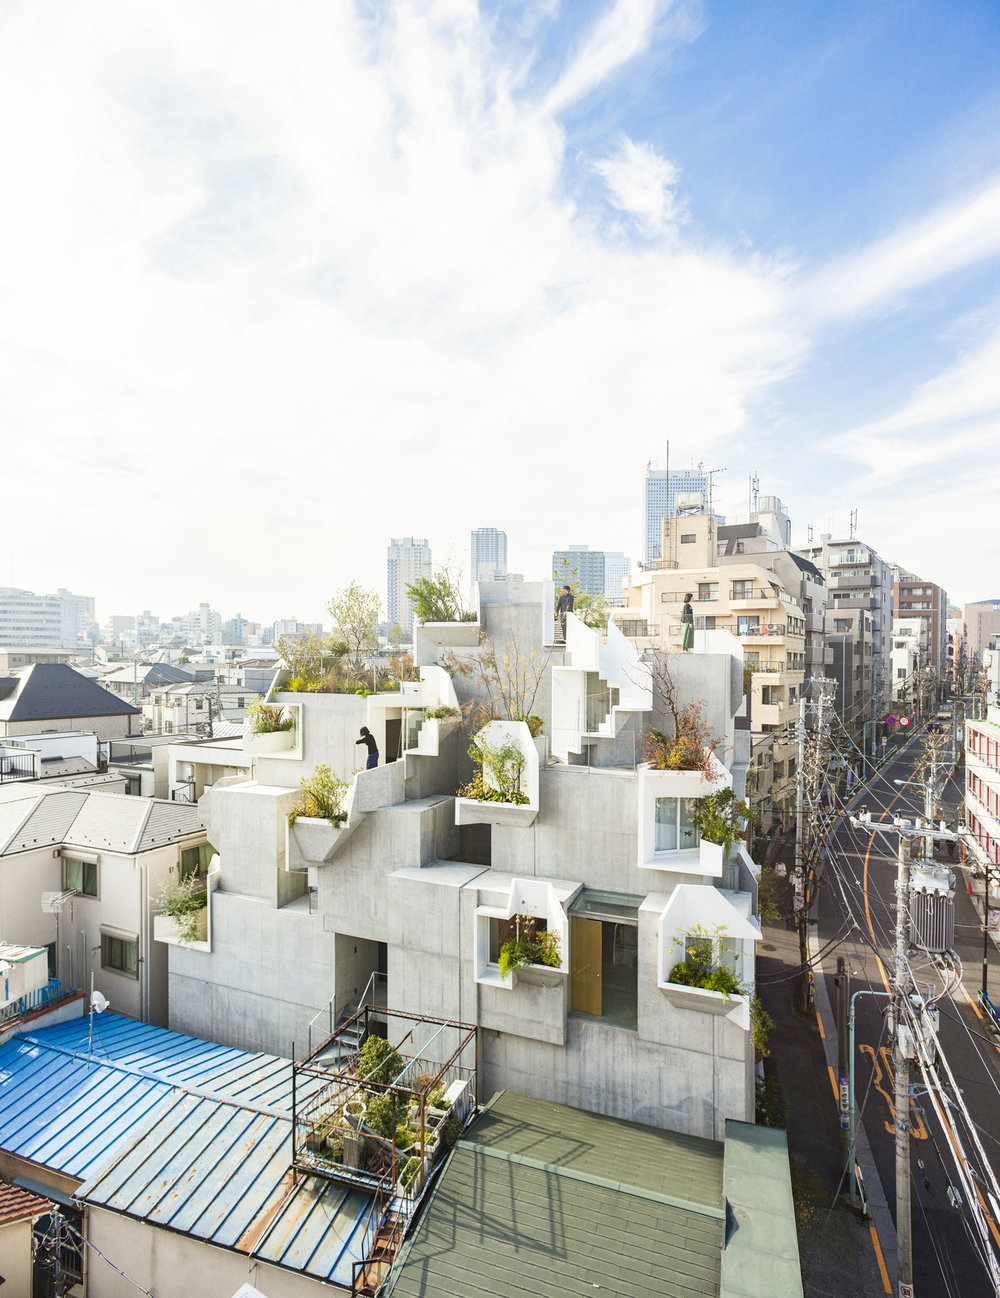 Tree-ness-House-Toshima-Japan-by-Akihisa-Hirata-Yellowtrace-02.jpg